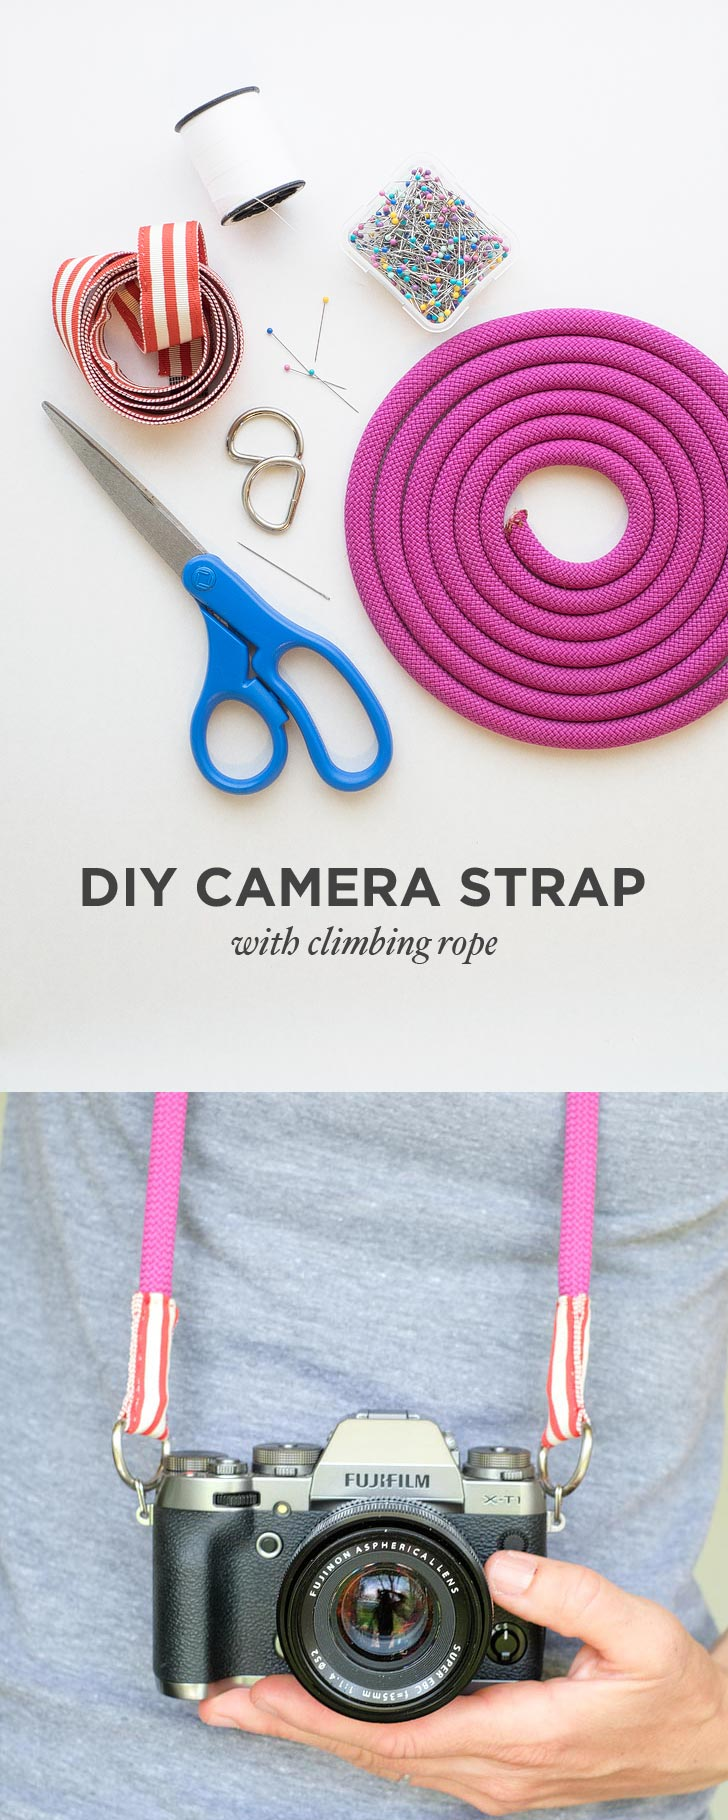 DIY Camera Strap with Climbing Rope // localadventurer.com